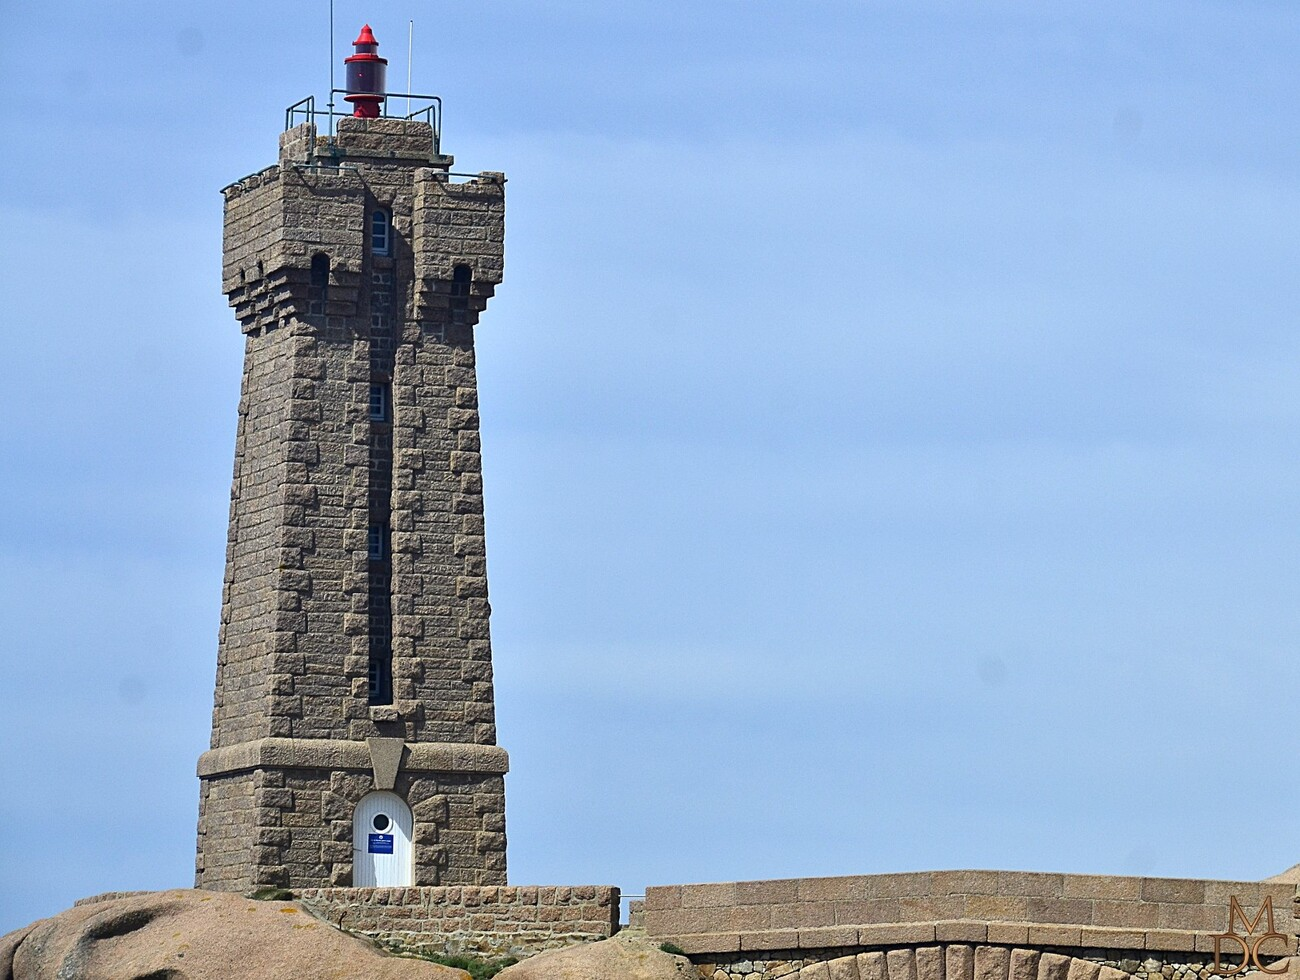 Phare de Ploumanach (Mean Ruz)